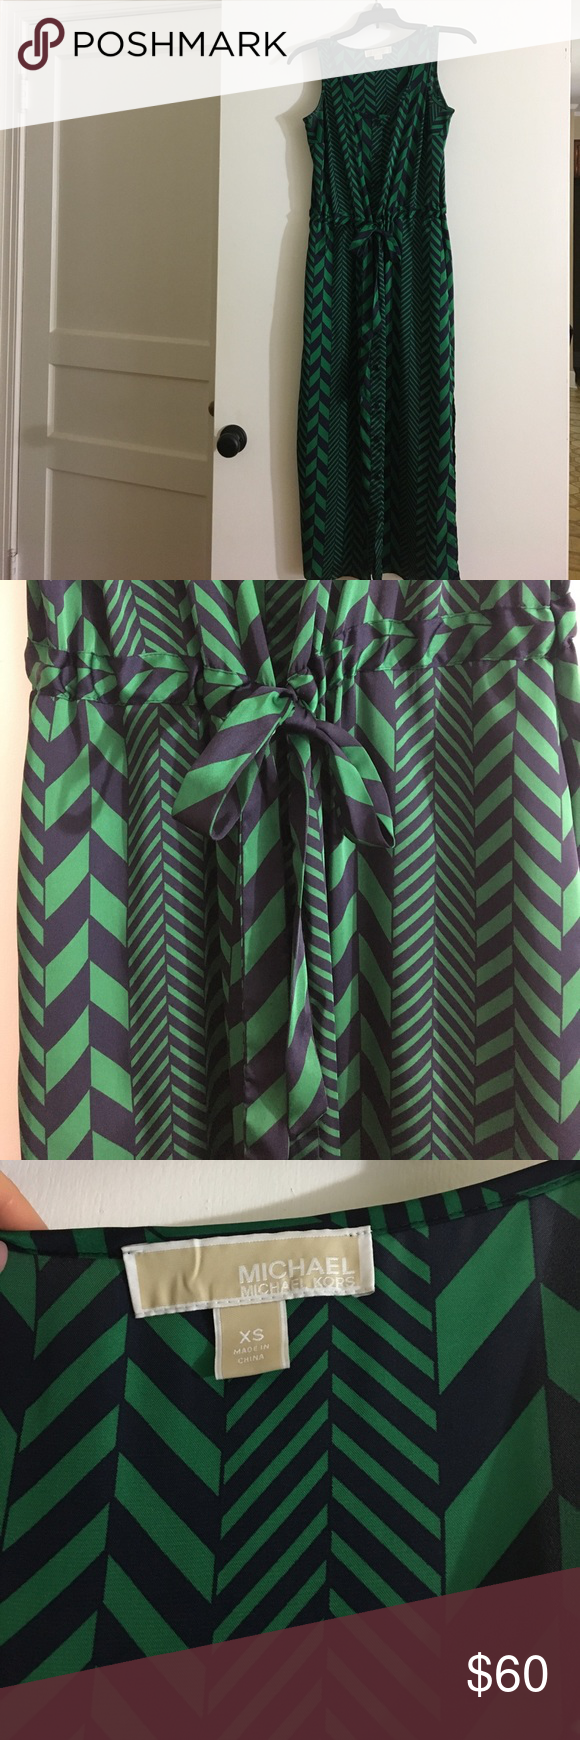 Michael Kors mid-length navy and green dress Michael Kors Navy and Green mid-shin length dress. Size XS. Bow closure captured in the front. Dresses Maxi